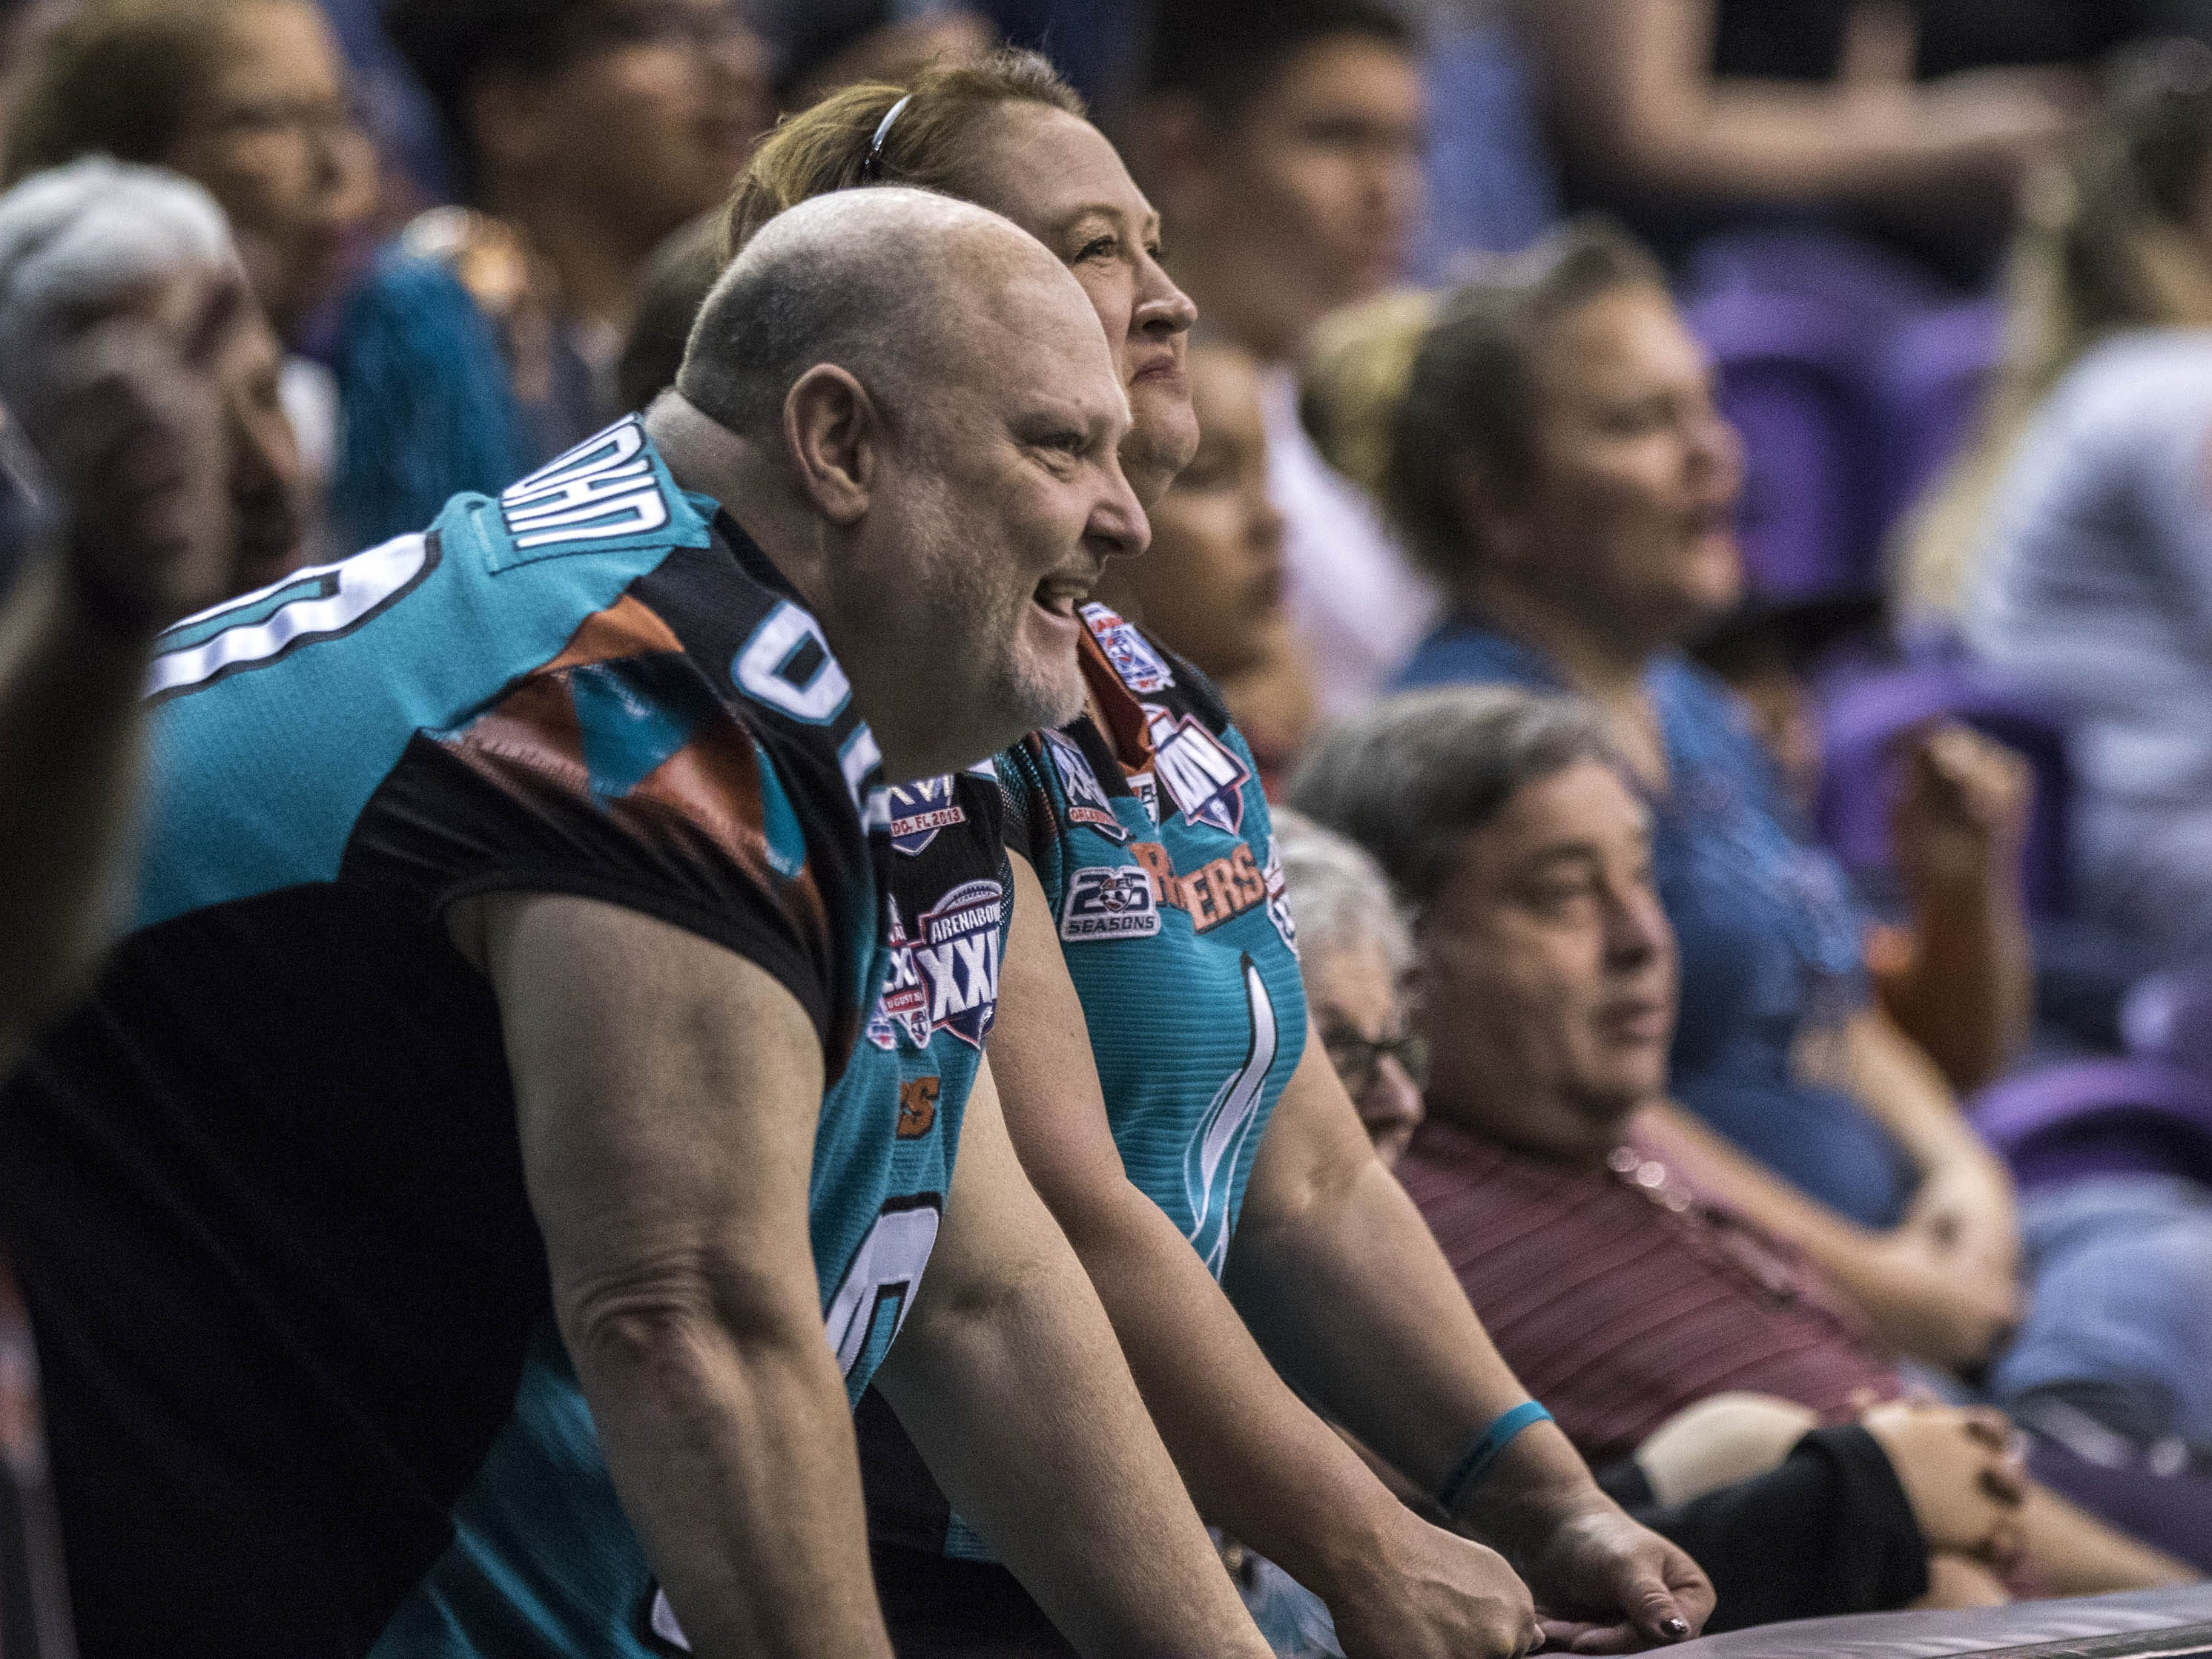 Arizona Rattlers fans enjoy their teams romp against the Cedar Rapids River Kings at Talking Stick Resort Arena in Phoenix, Sunday, March 3, 2019.